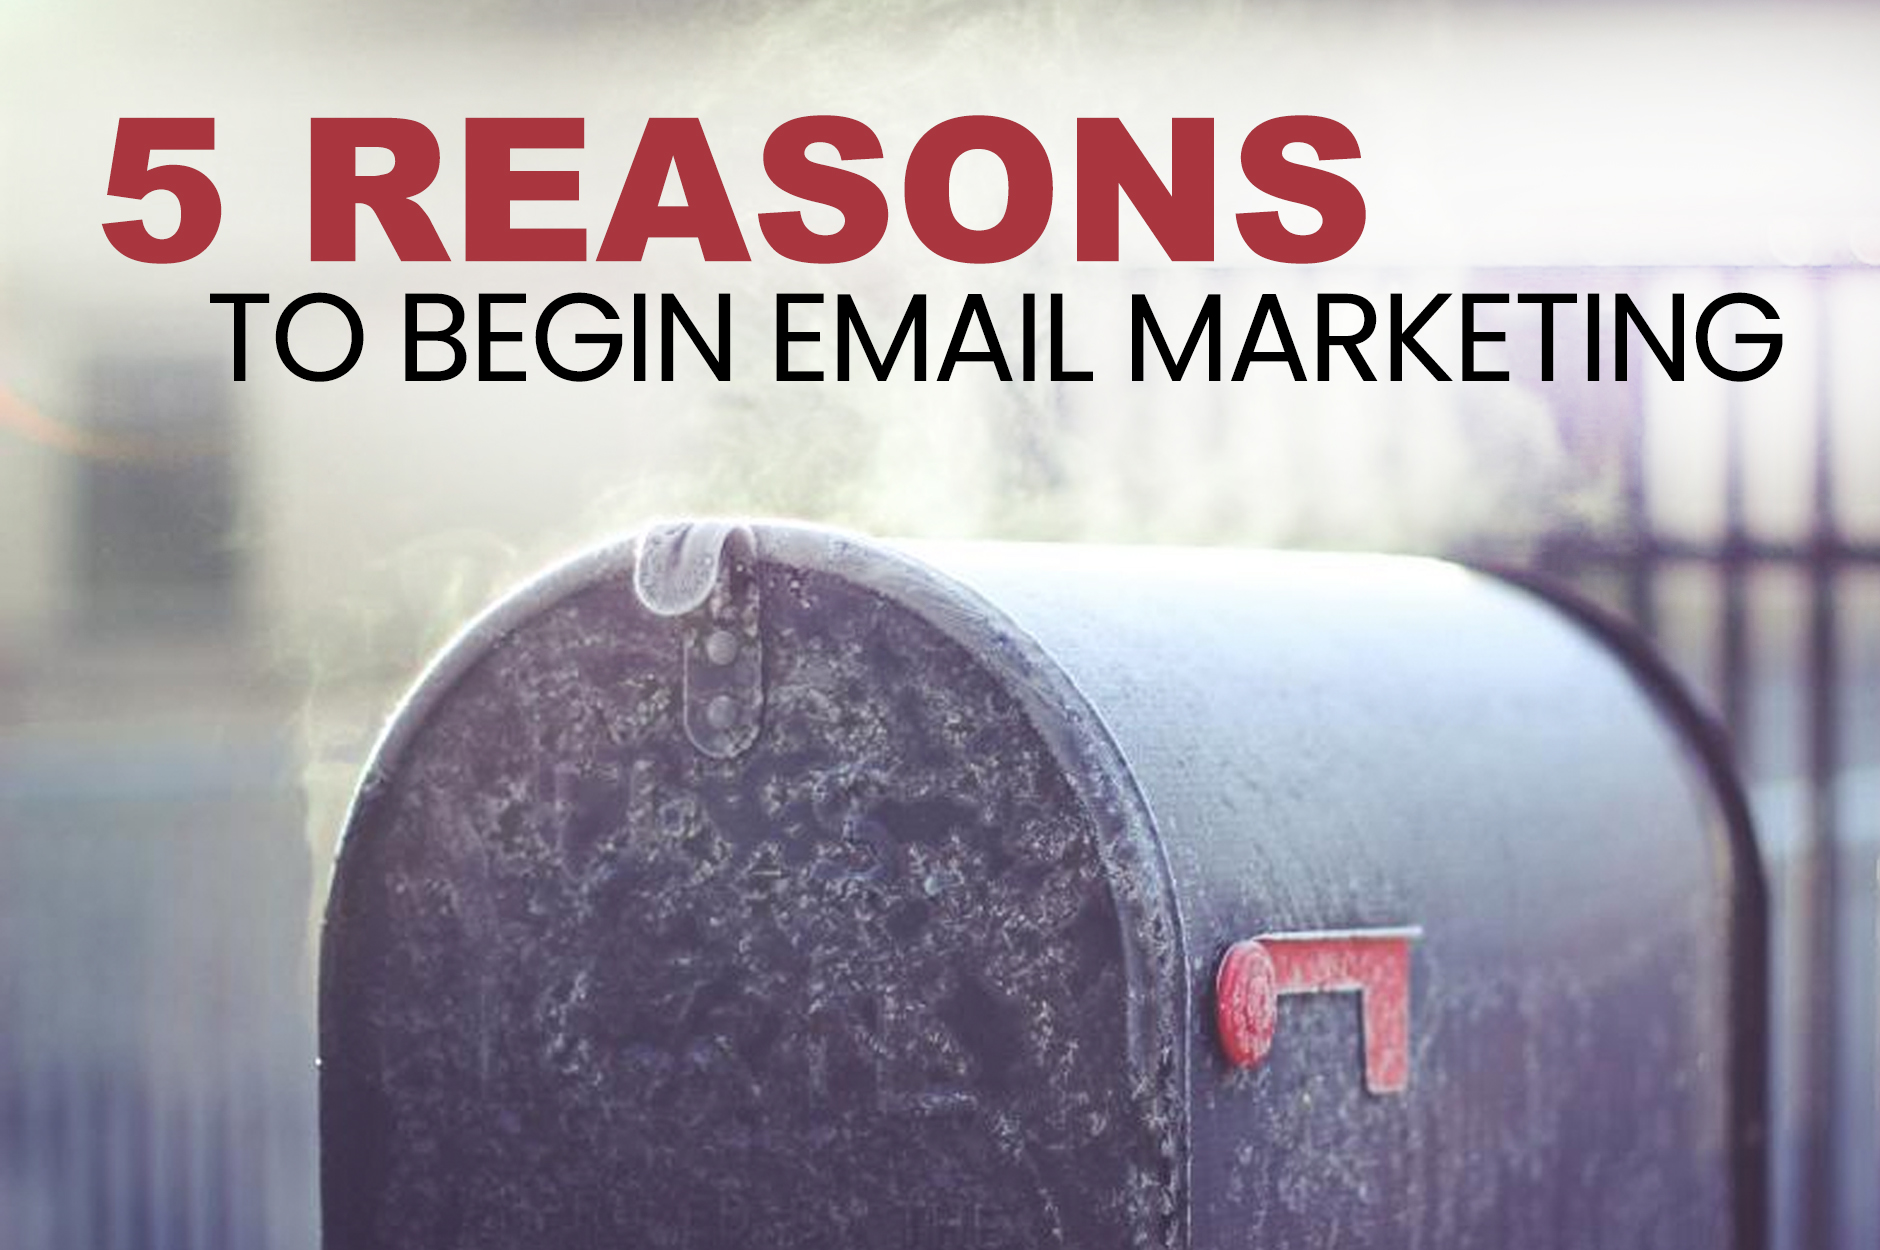 5 Reasons to Begin Restaurant Email Marketing